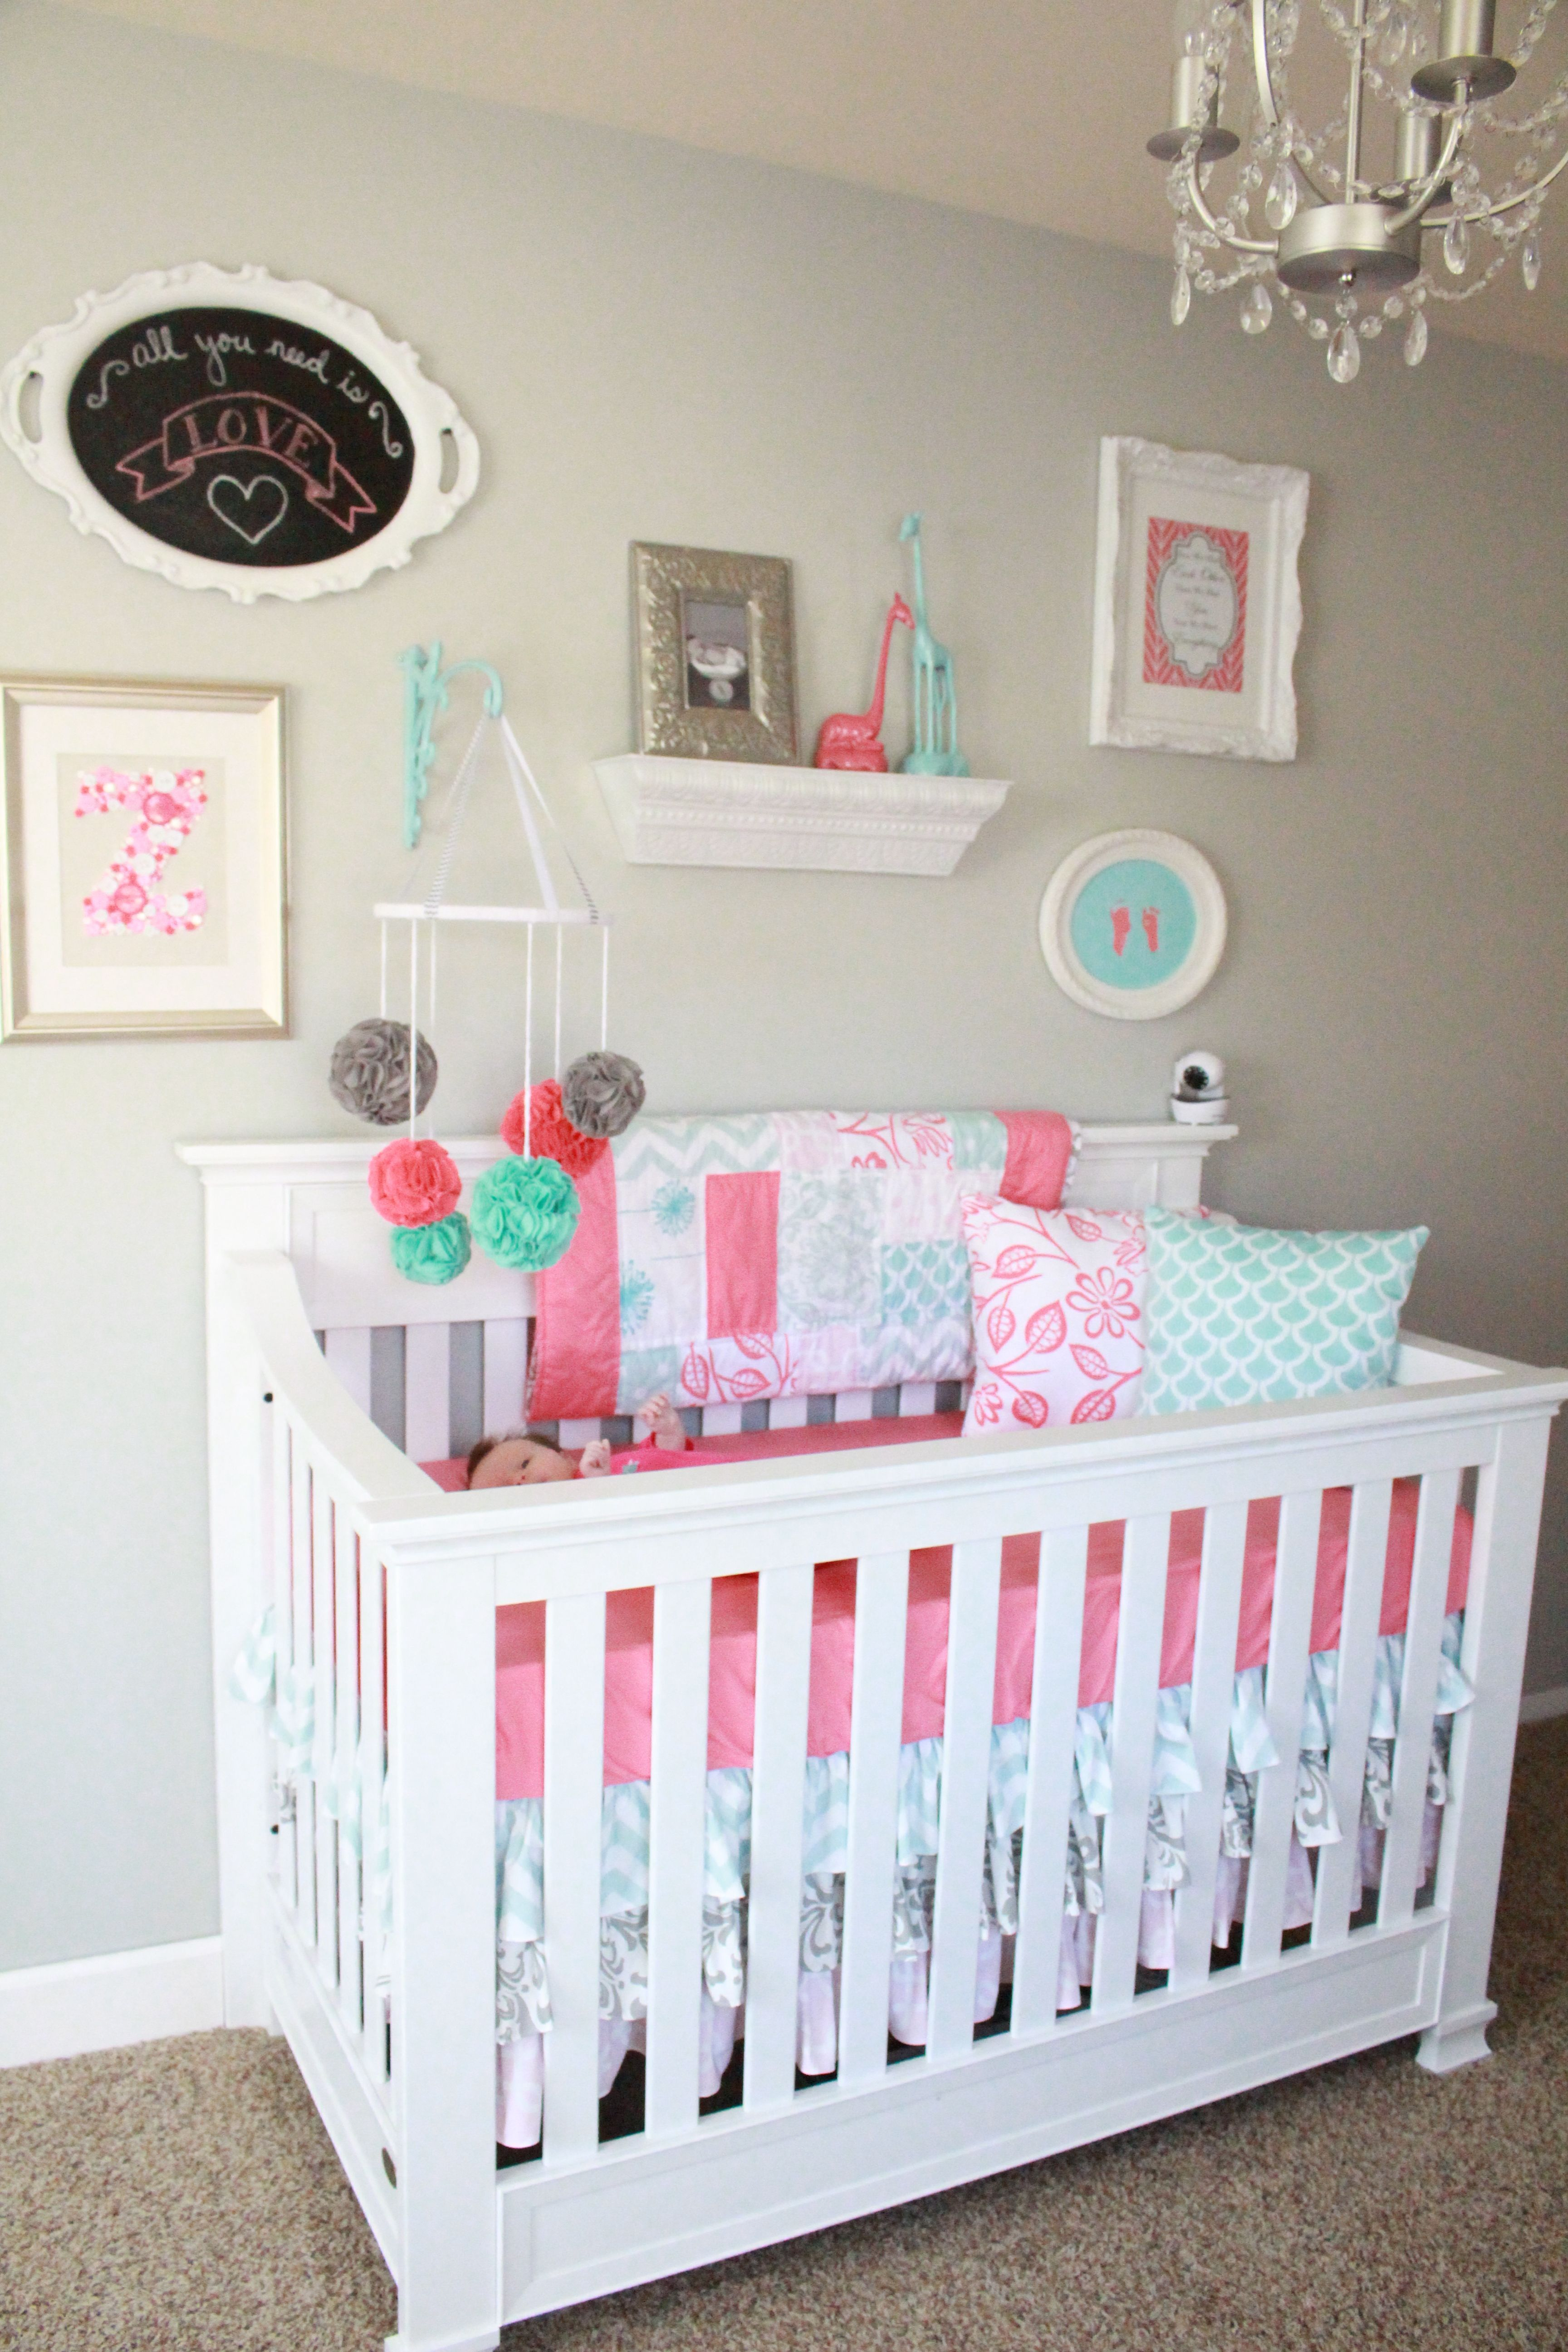 10+ Great Baby Room Ideas For Parents To Use In Their Decor (With